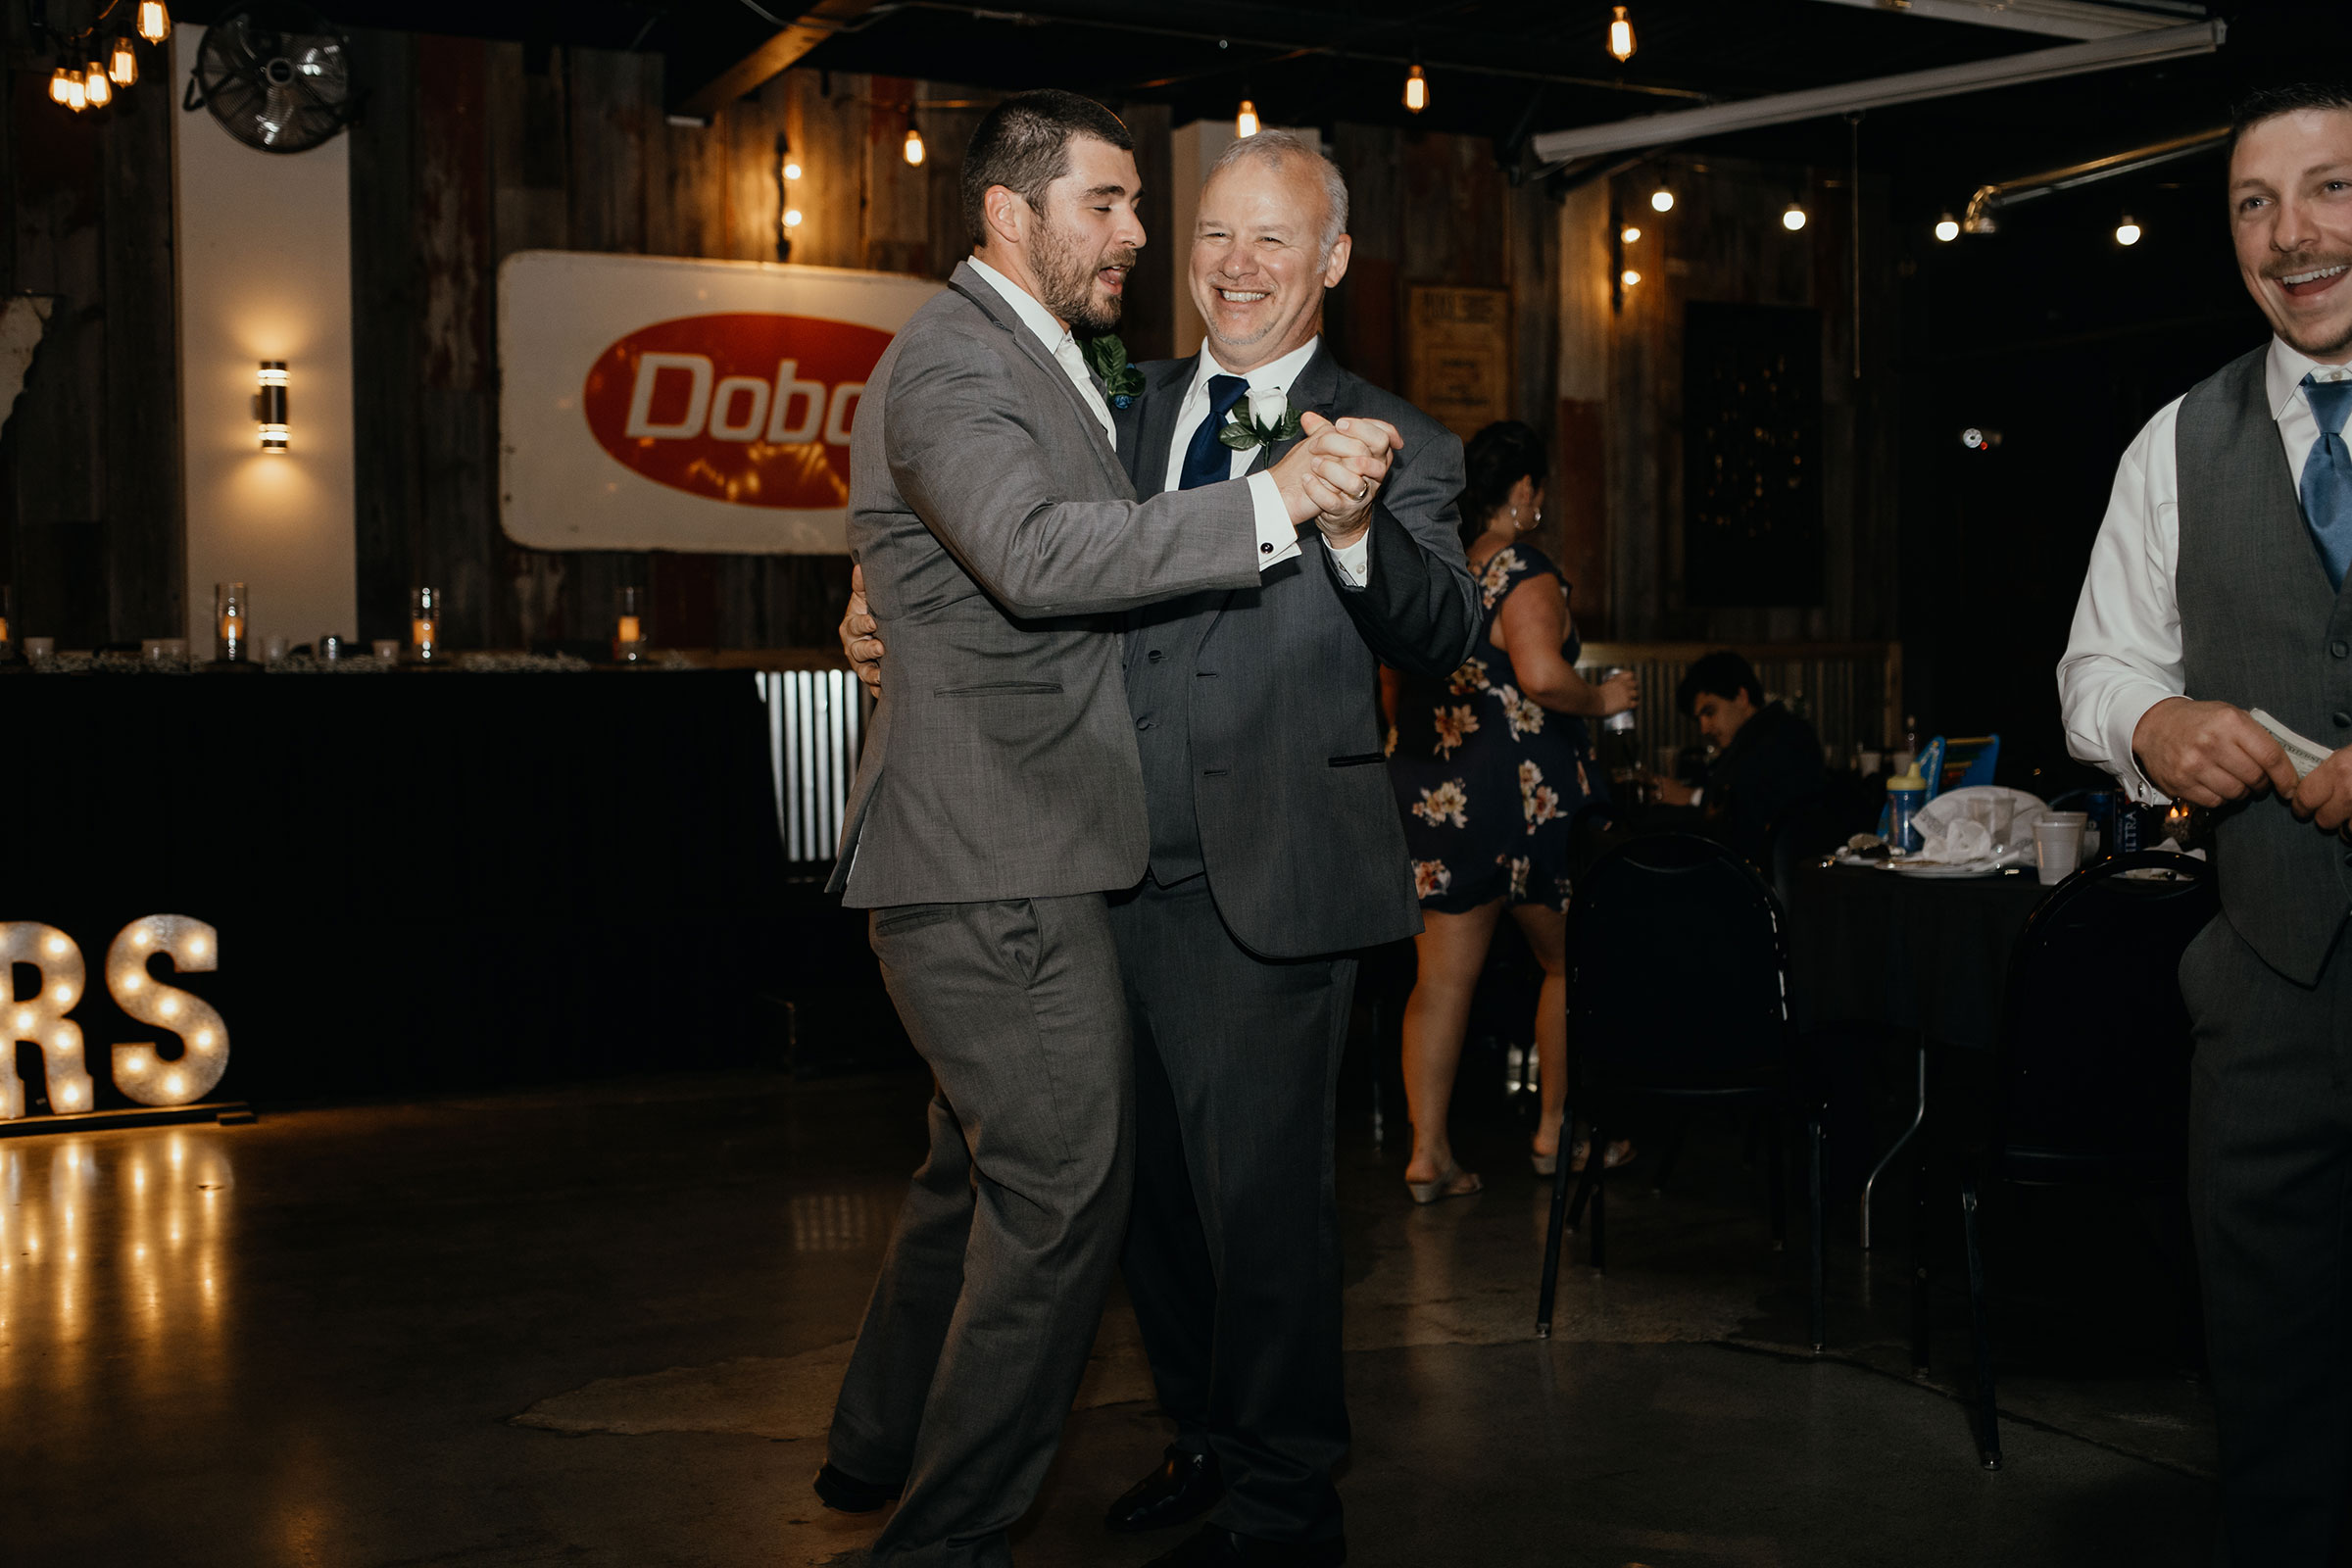 father-of-bride-dancing-with-groom-decades-event-center-building-desmoines-iowa-raelyn-ramey-photography..jpg